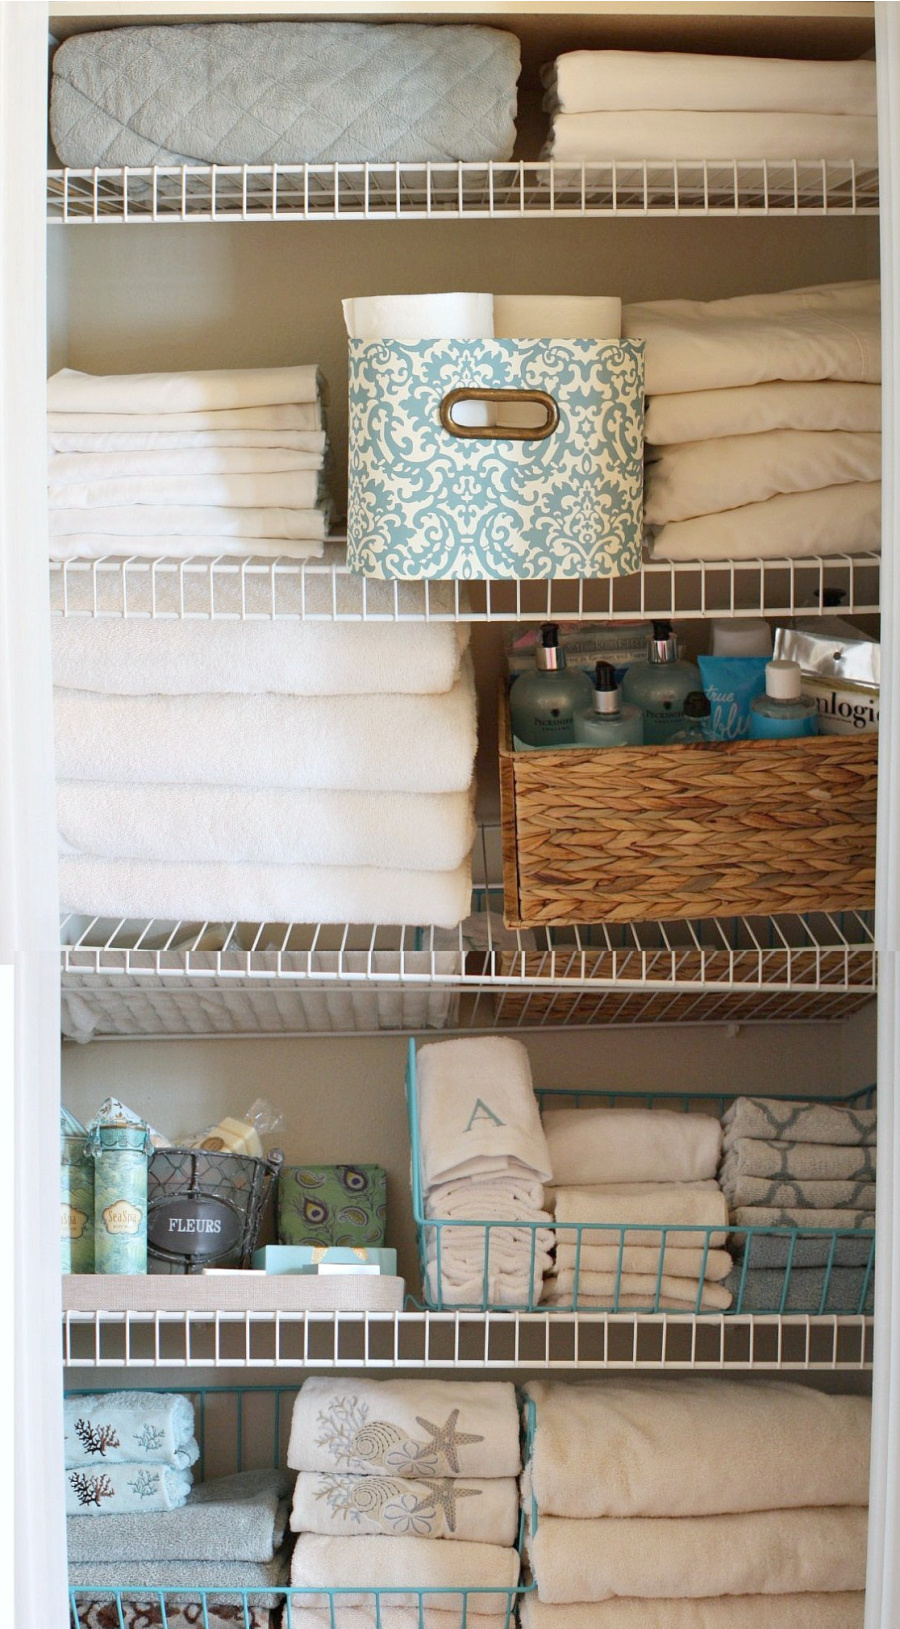 a linen closet of organized shelves with folded towels and baskets of soap